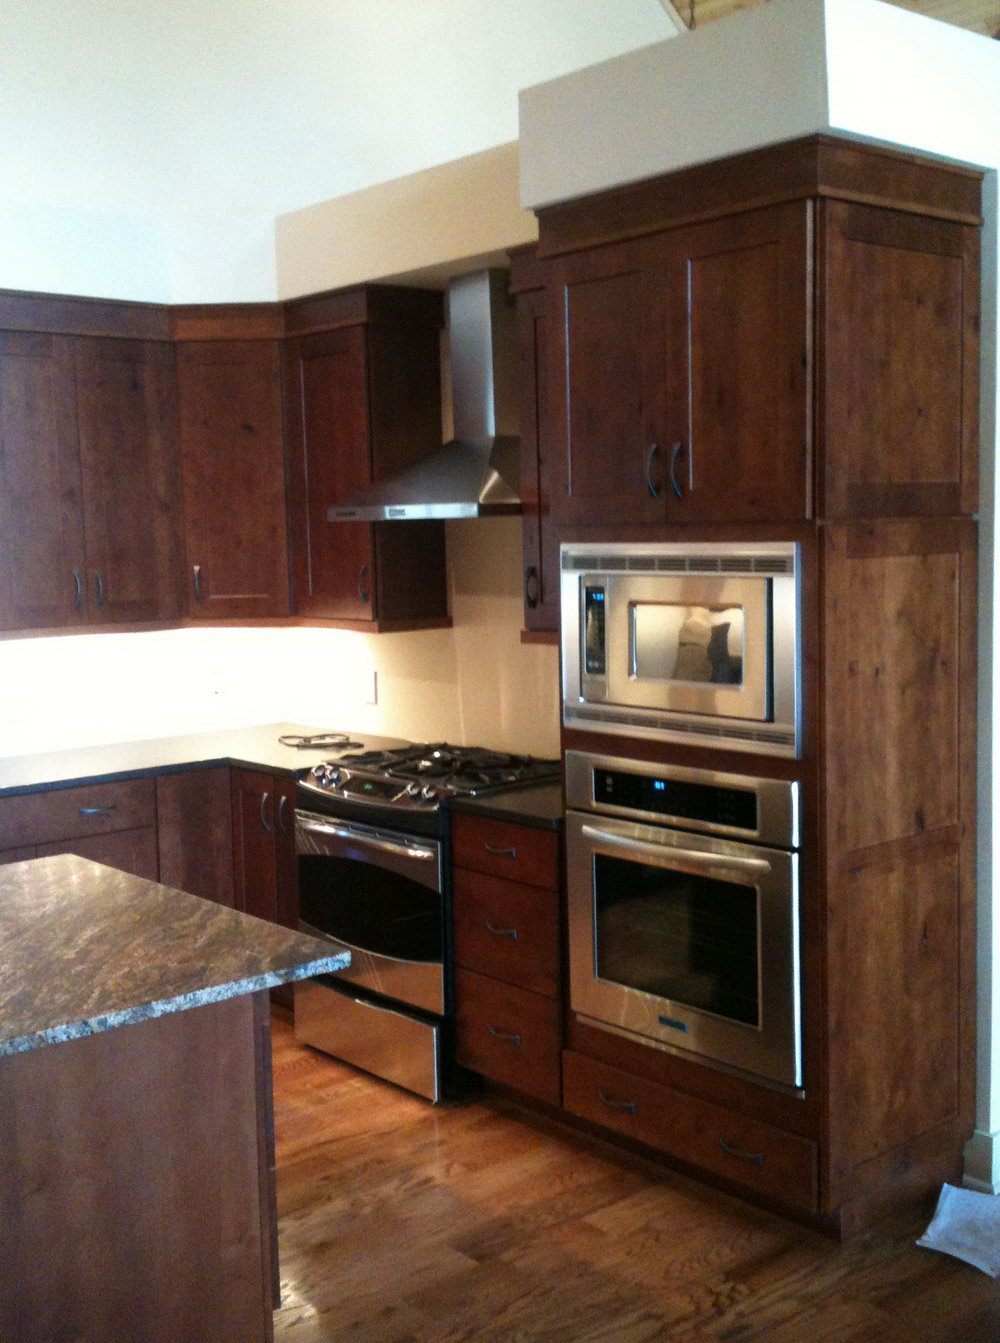 Kitchen Oven Cabinet Dimensions